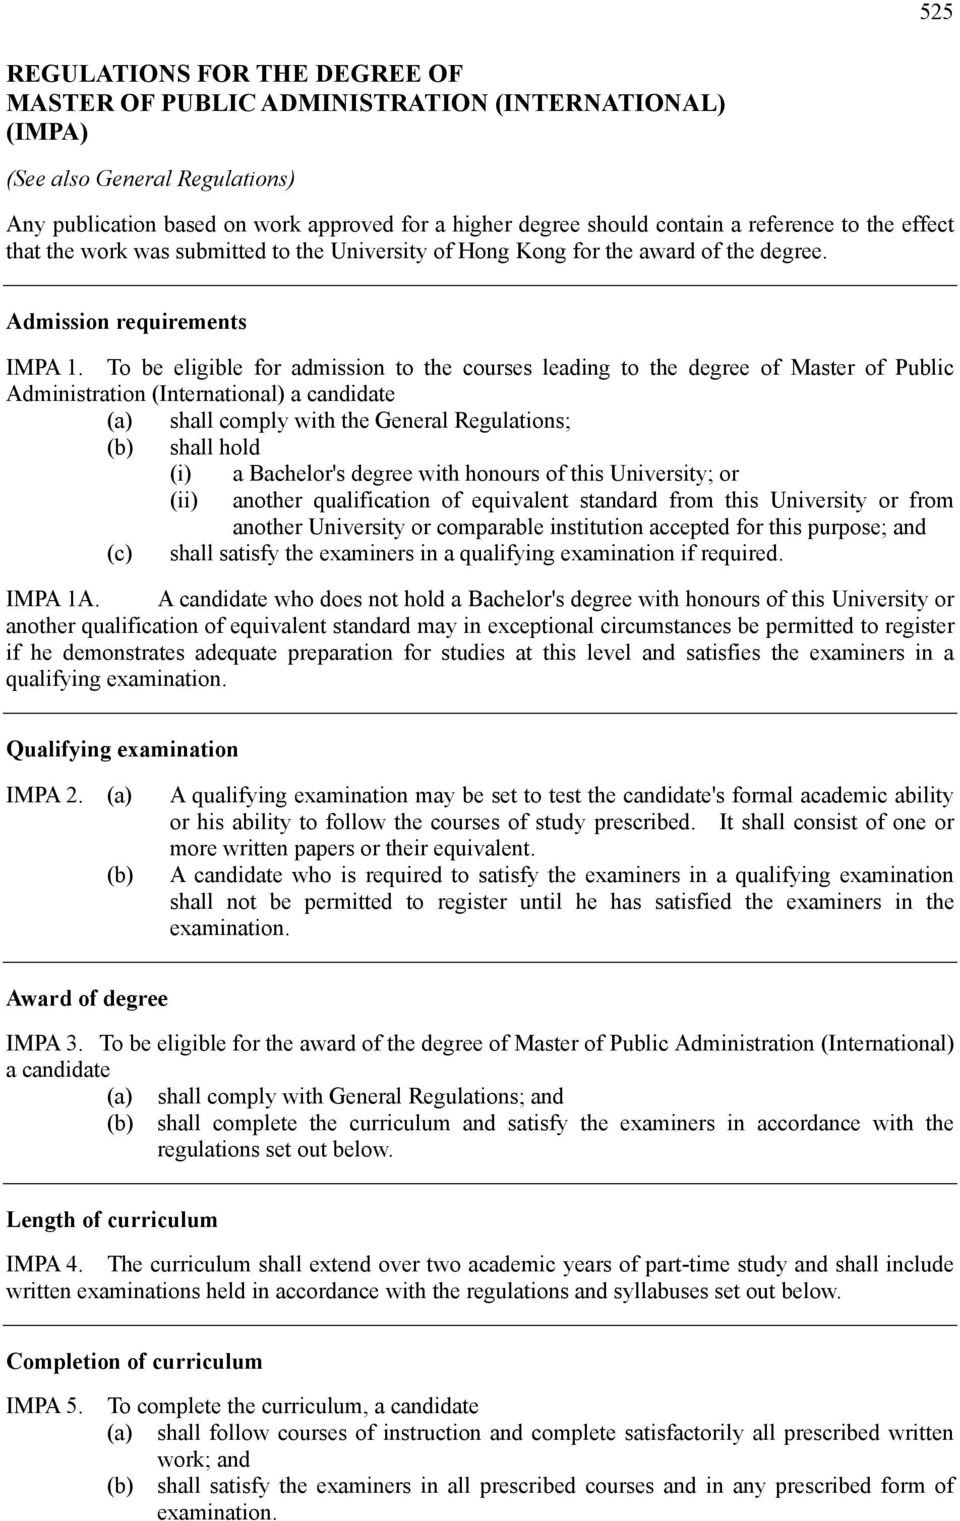 To be eligible for admission to the courses leading to the degree of Master of Public Administration (International) a candidate (a) shall comply with the General Regulations; (b) shall hold (i) a